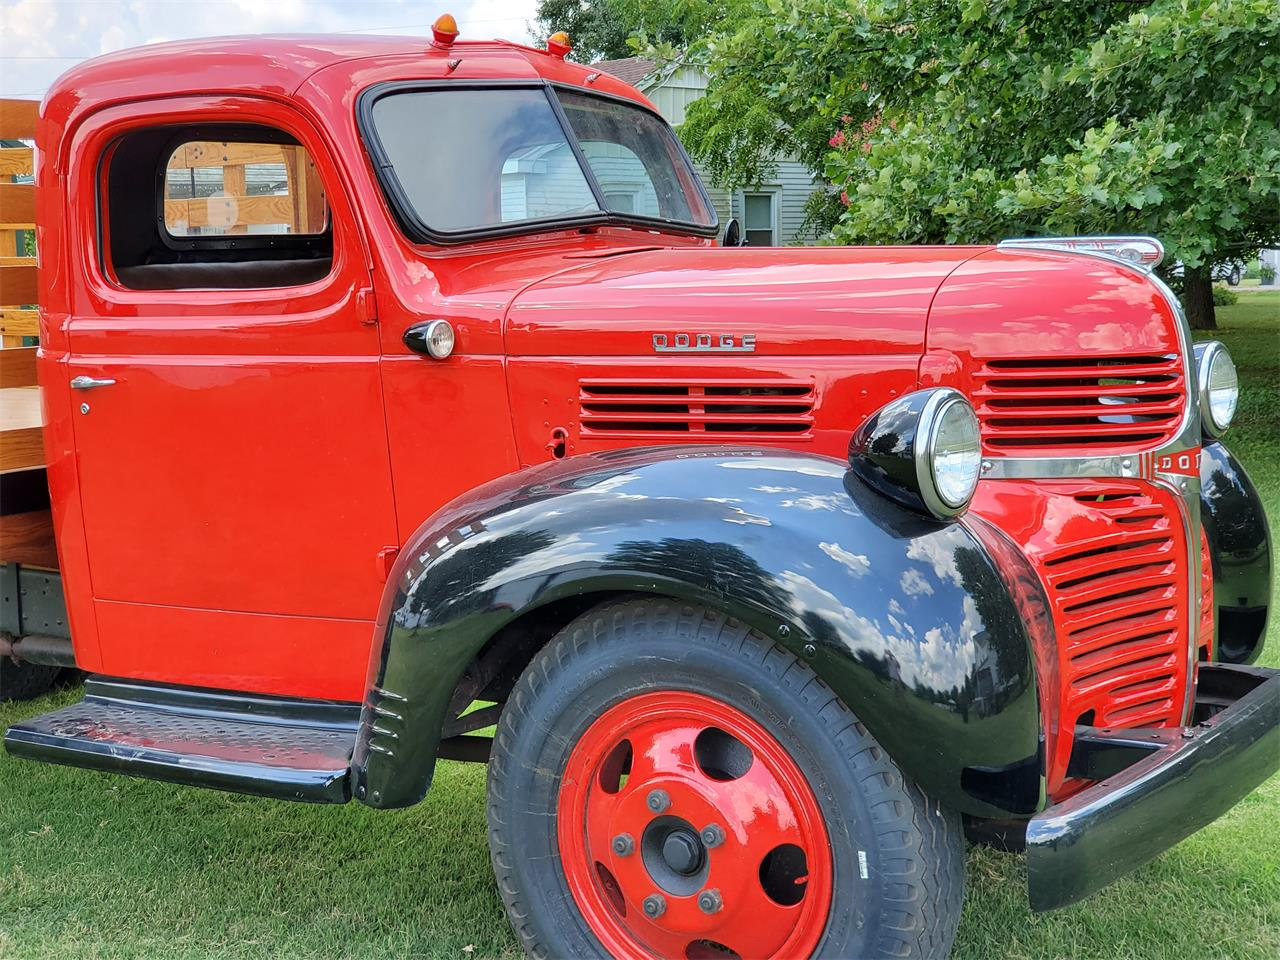 Large Picture of '46 Dodge 1 Ton Pickup located in Hopkinsville Kentucky Offered by a Private Seller - QO6R